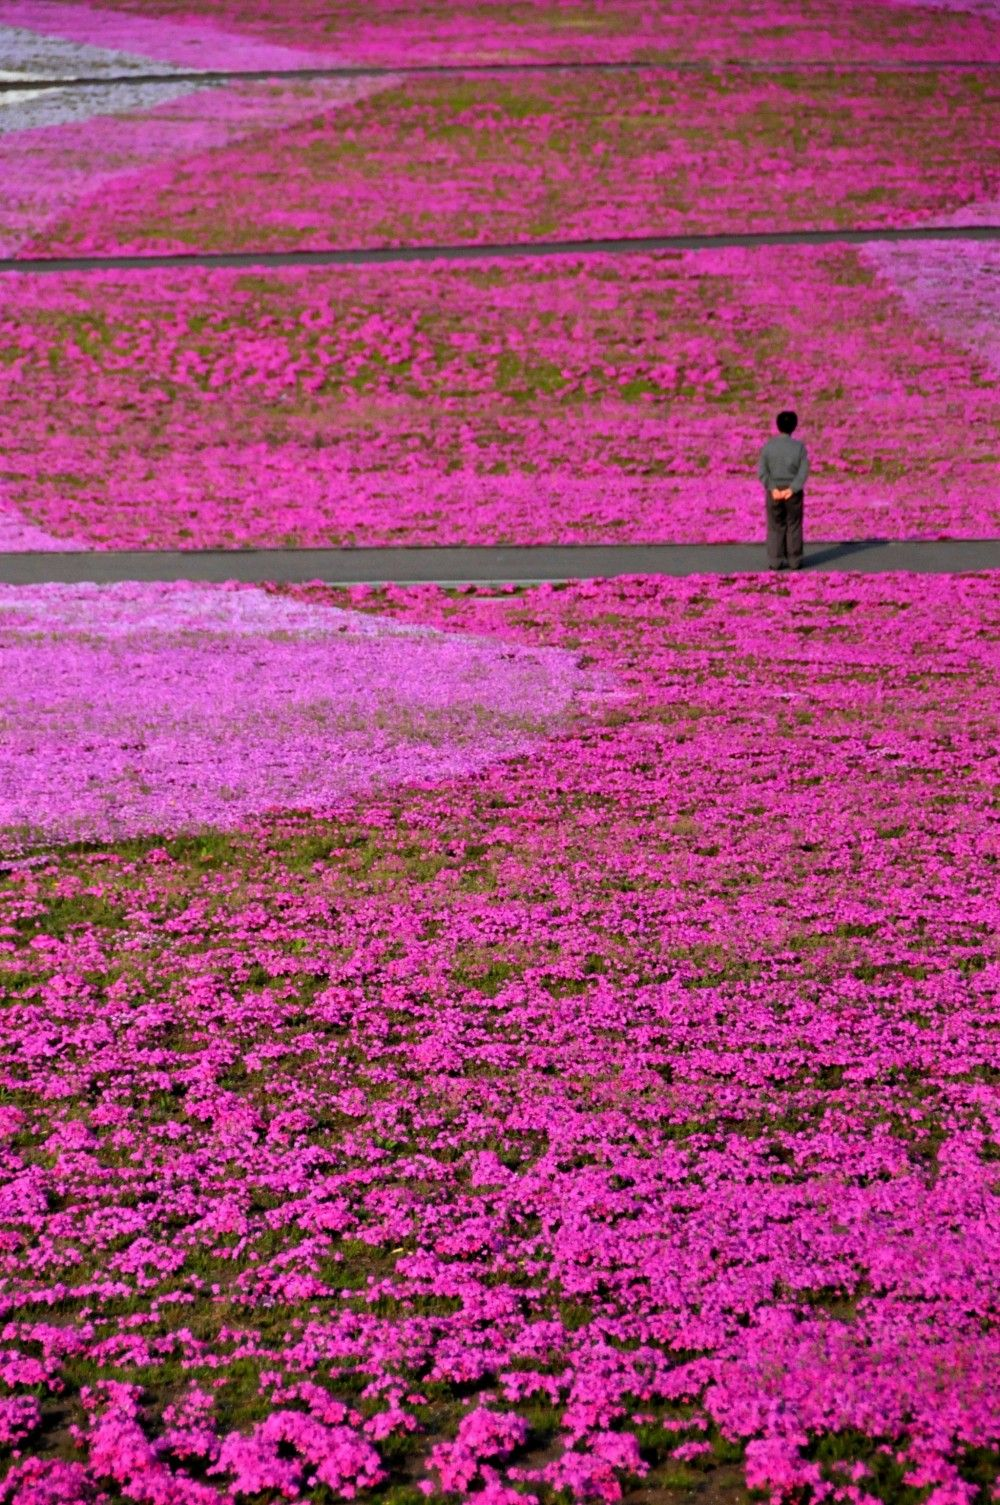 Blooming flowers, the first signs of spring. Flower festival in Shibazakura Hill, Japan